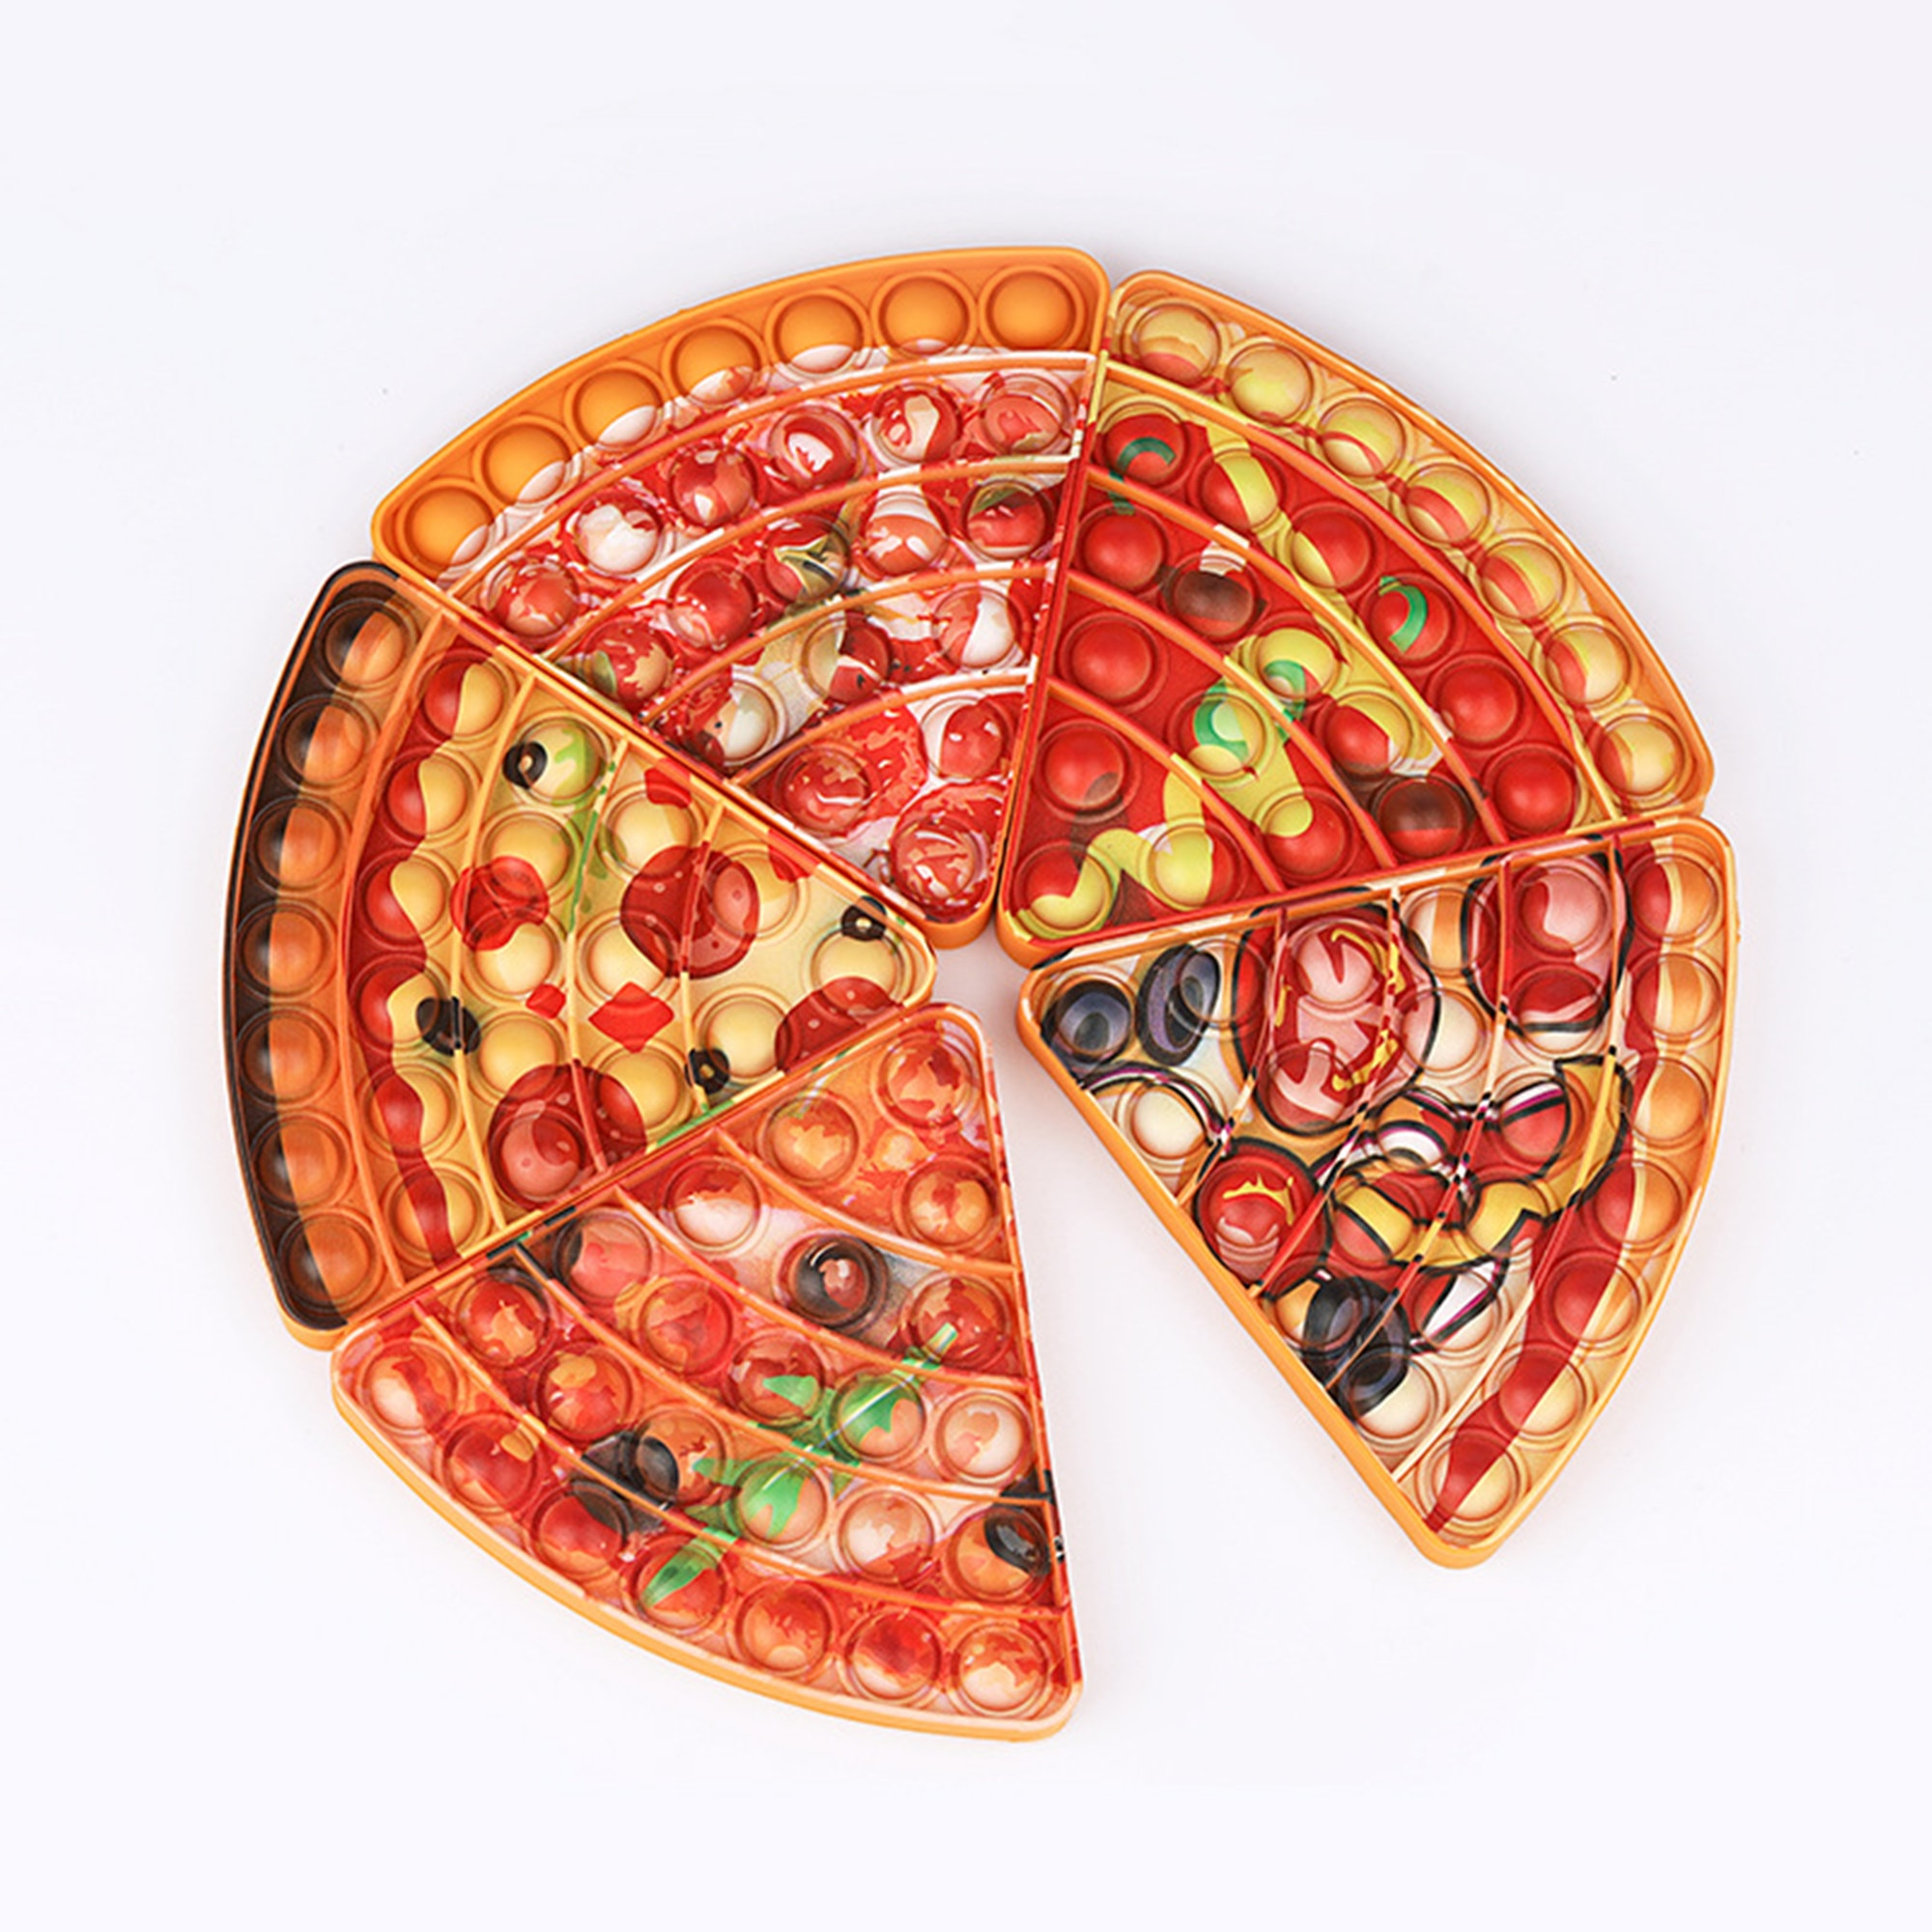 Emulation Food Pizza Push Bubble Fidget Toys Adult Stress Relief Squeeze Toy Antistress Soft Squishy